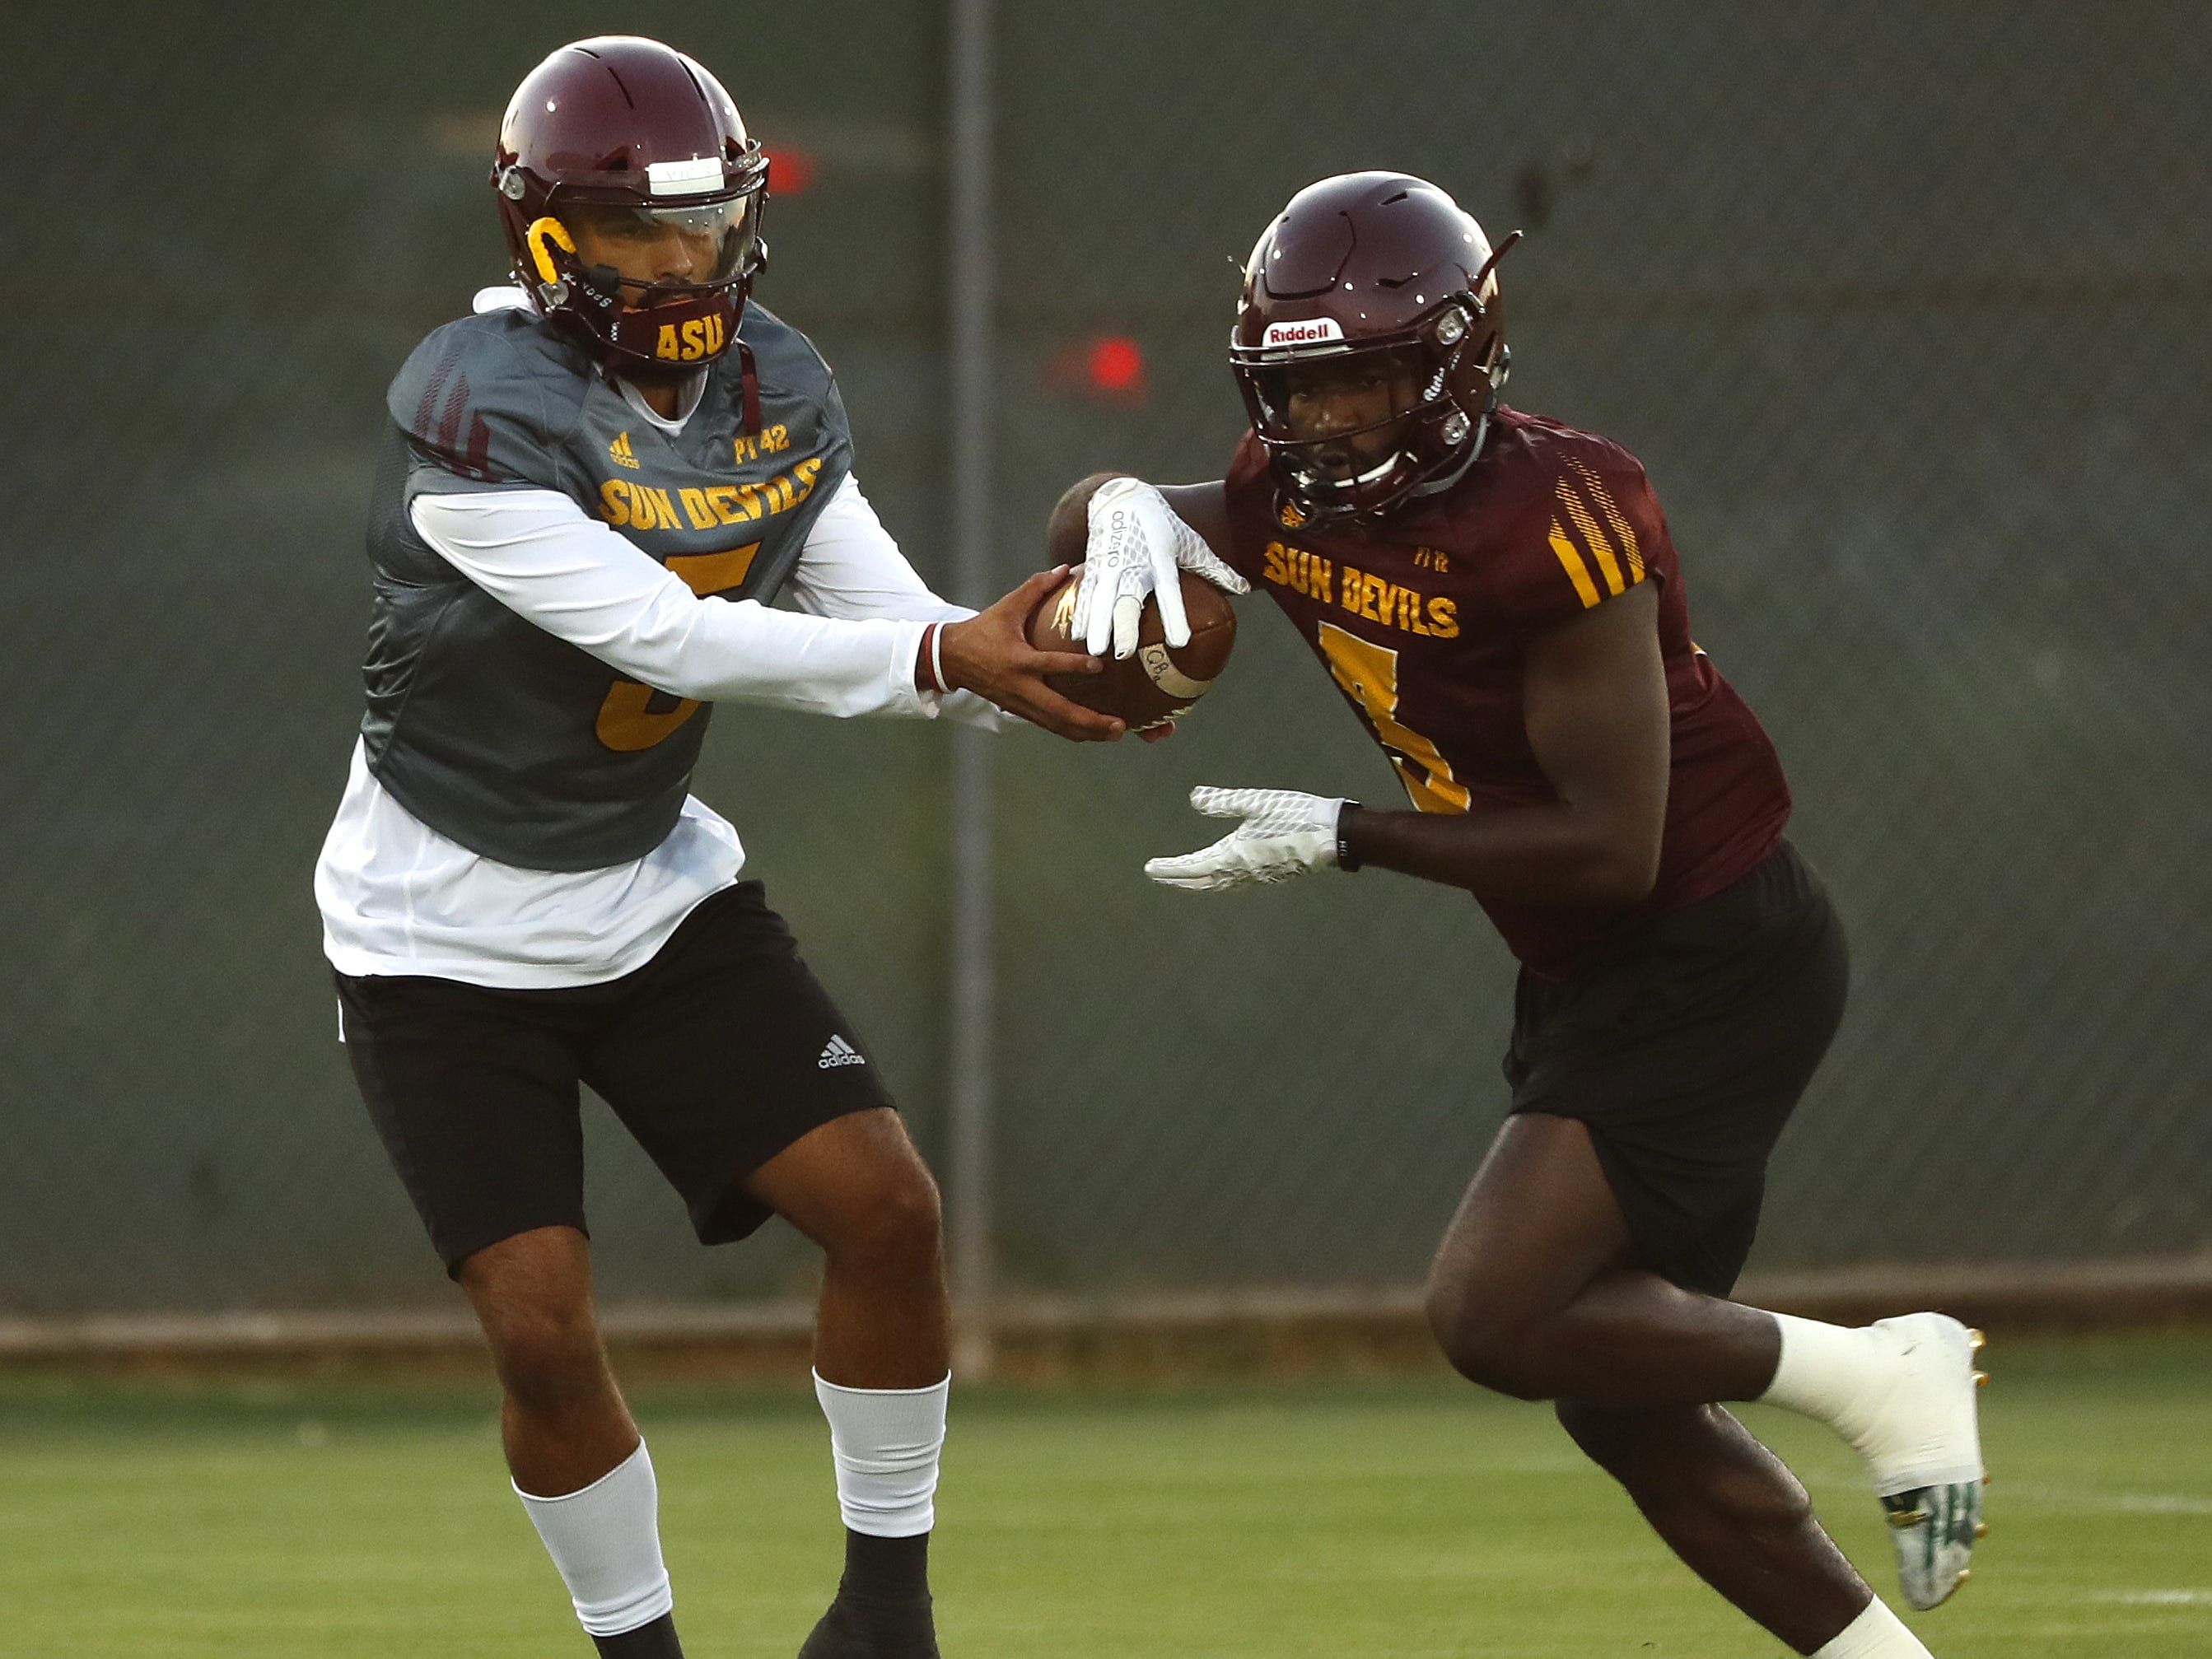 ASU's Manny Wilkins (5) fakes a hand-off to Eno Benjamin (3) during a practice at Kajikawa Football Practice Fields in Tempe, Ariz. on Aug. 6, 2018.